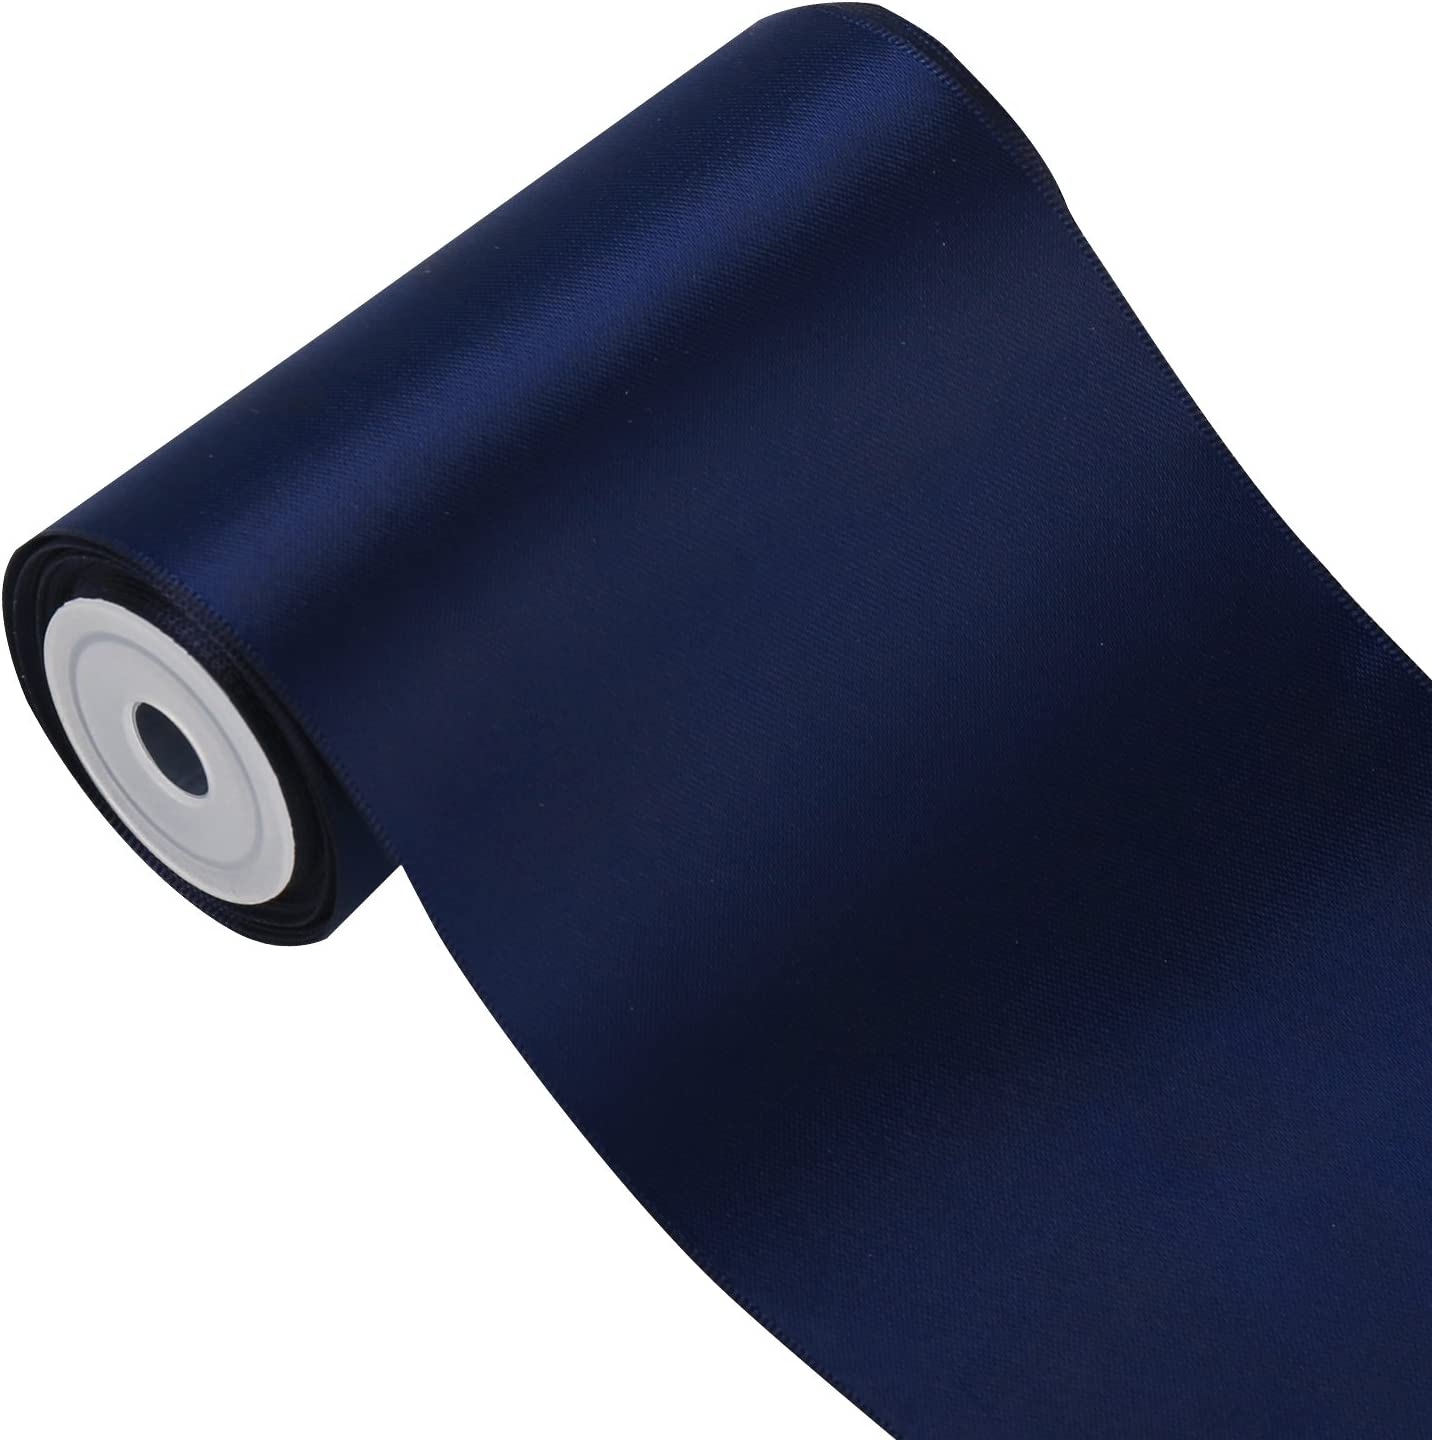 LaRibbons 4 inch Wide Solid Color Double Face Satin Ribbon Great for Chair Sash- 5 Yard/Spool (370-Navy)